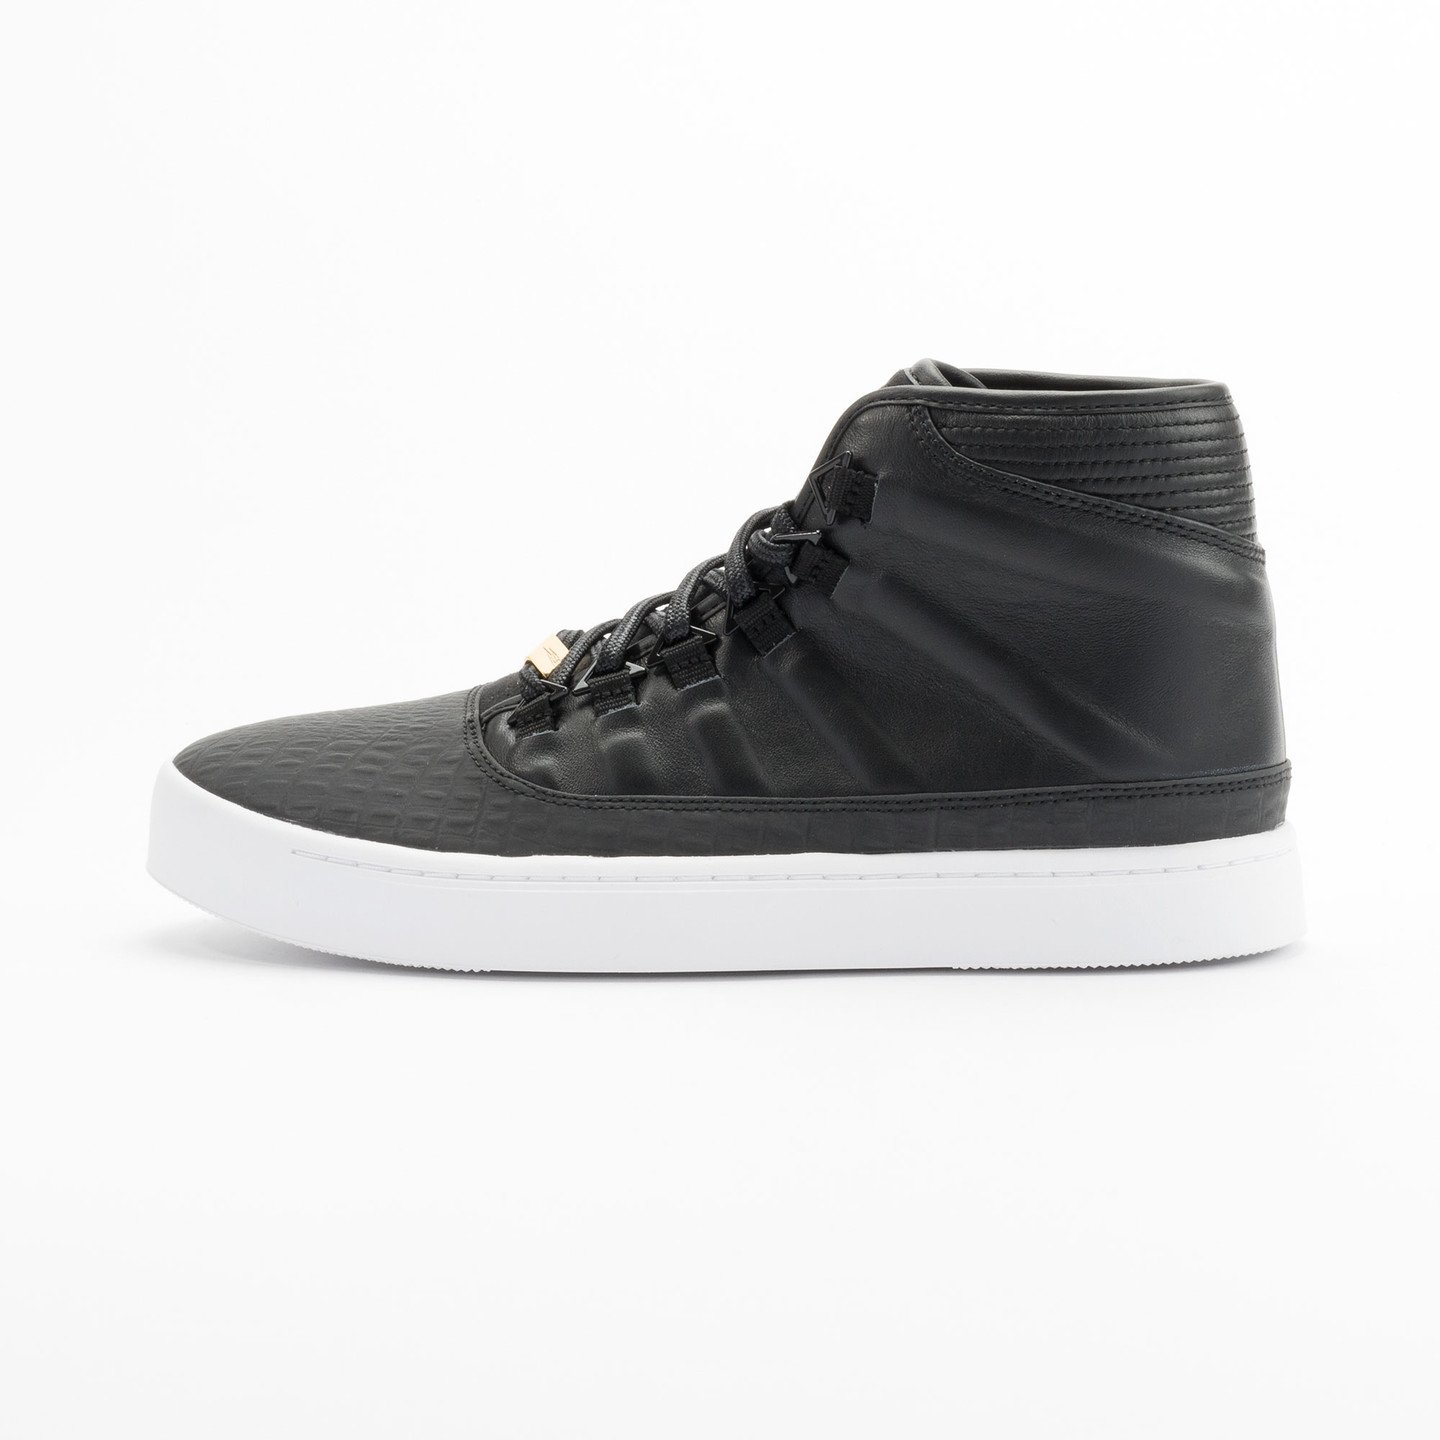 Jordan Westbrook 0 Black Metallic / Gold - White 768934-001-44.5